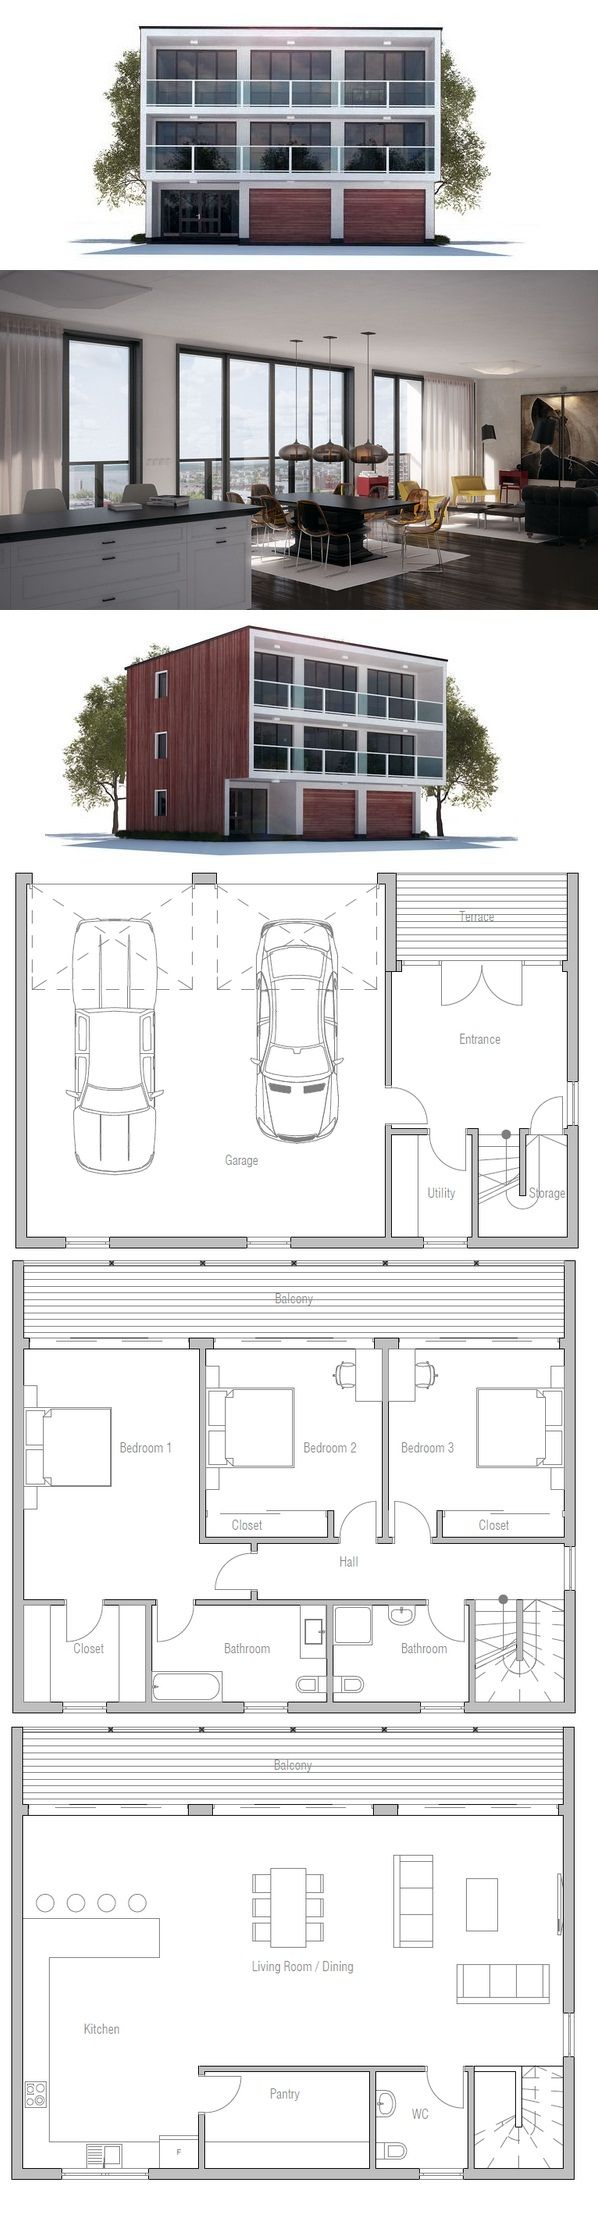 718 best images about designs plans on pinterest house for Decor 718 container